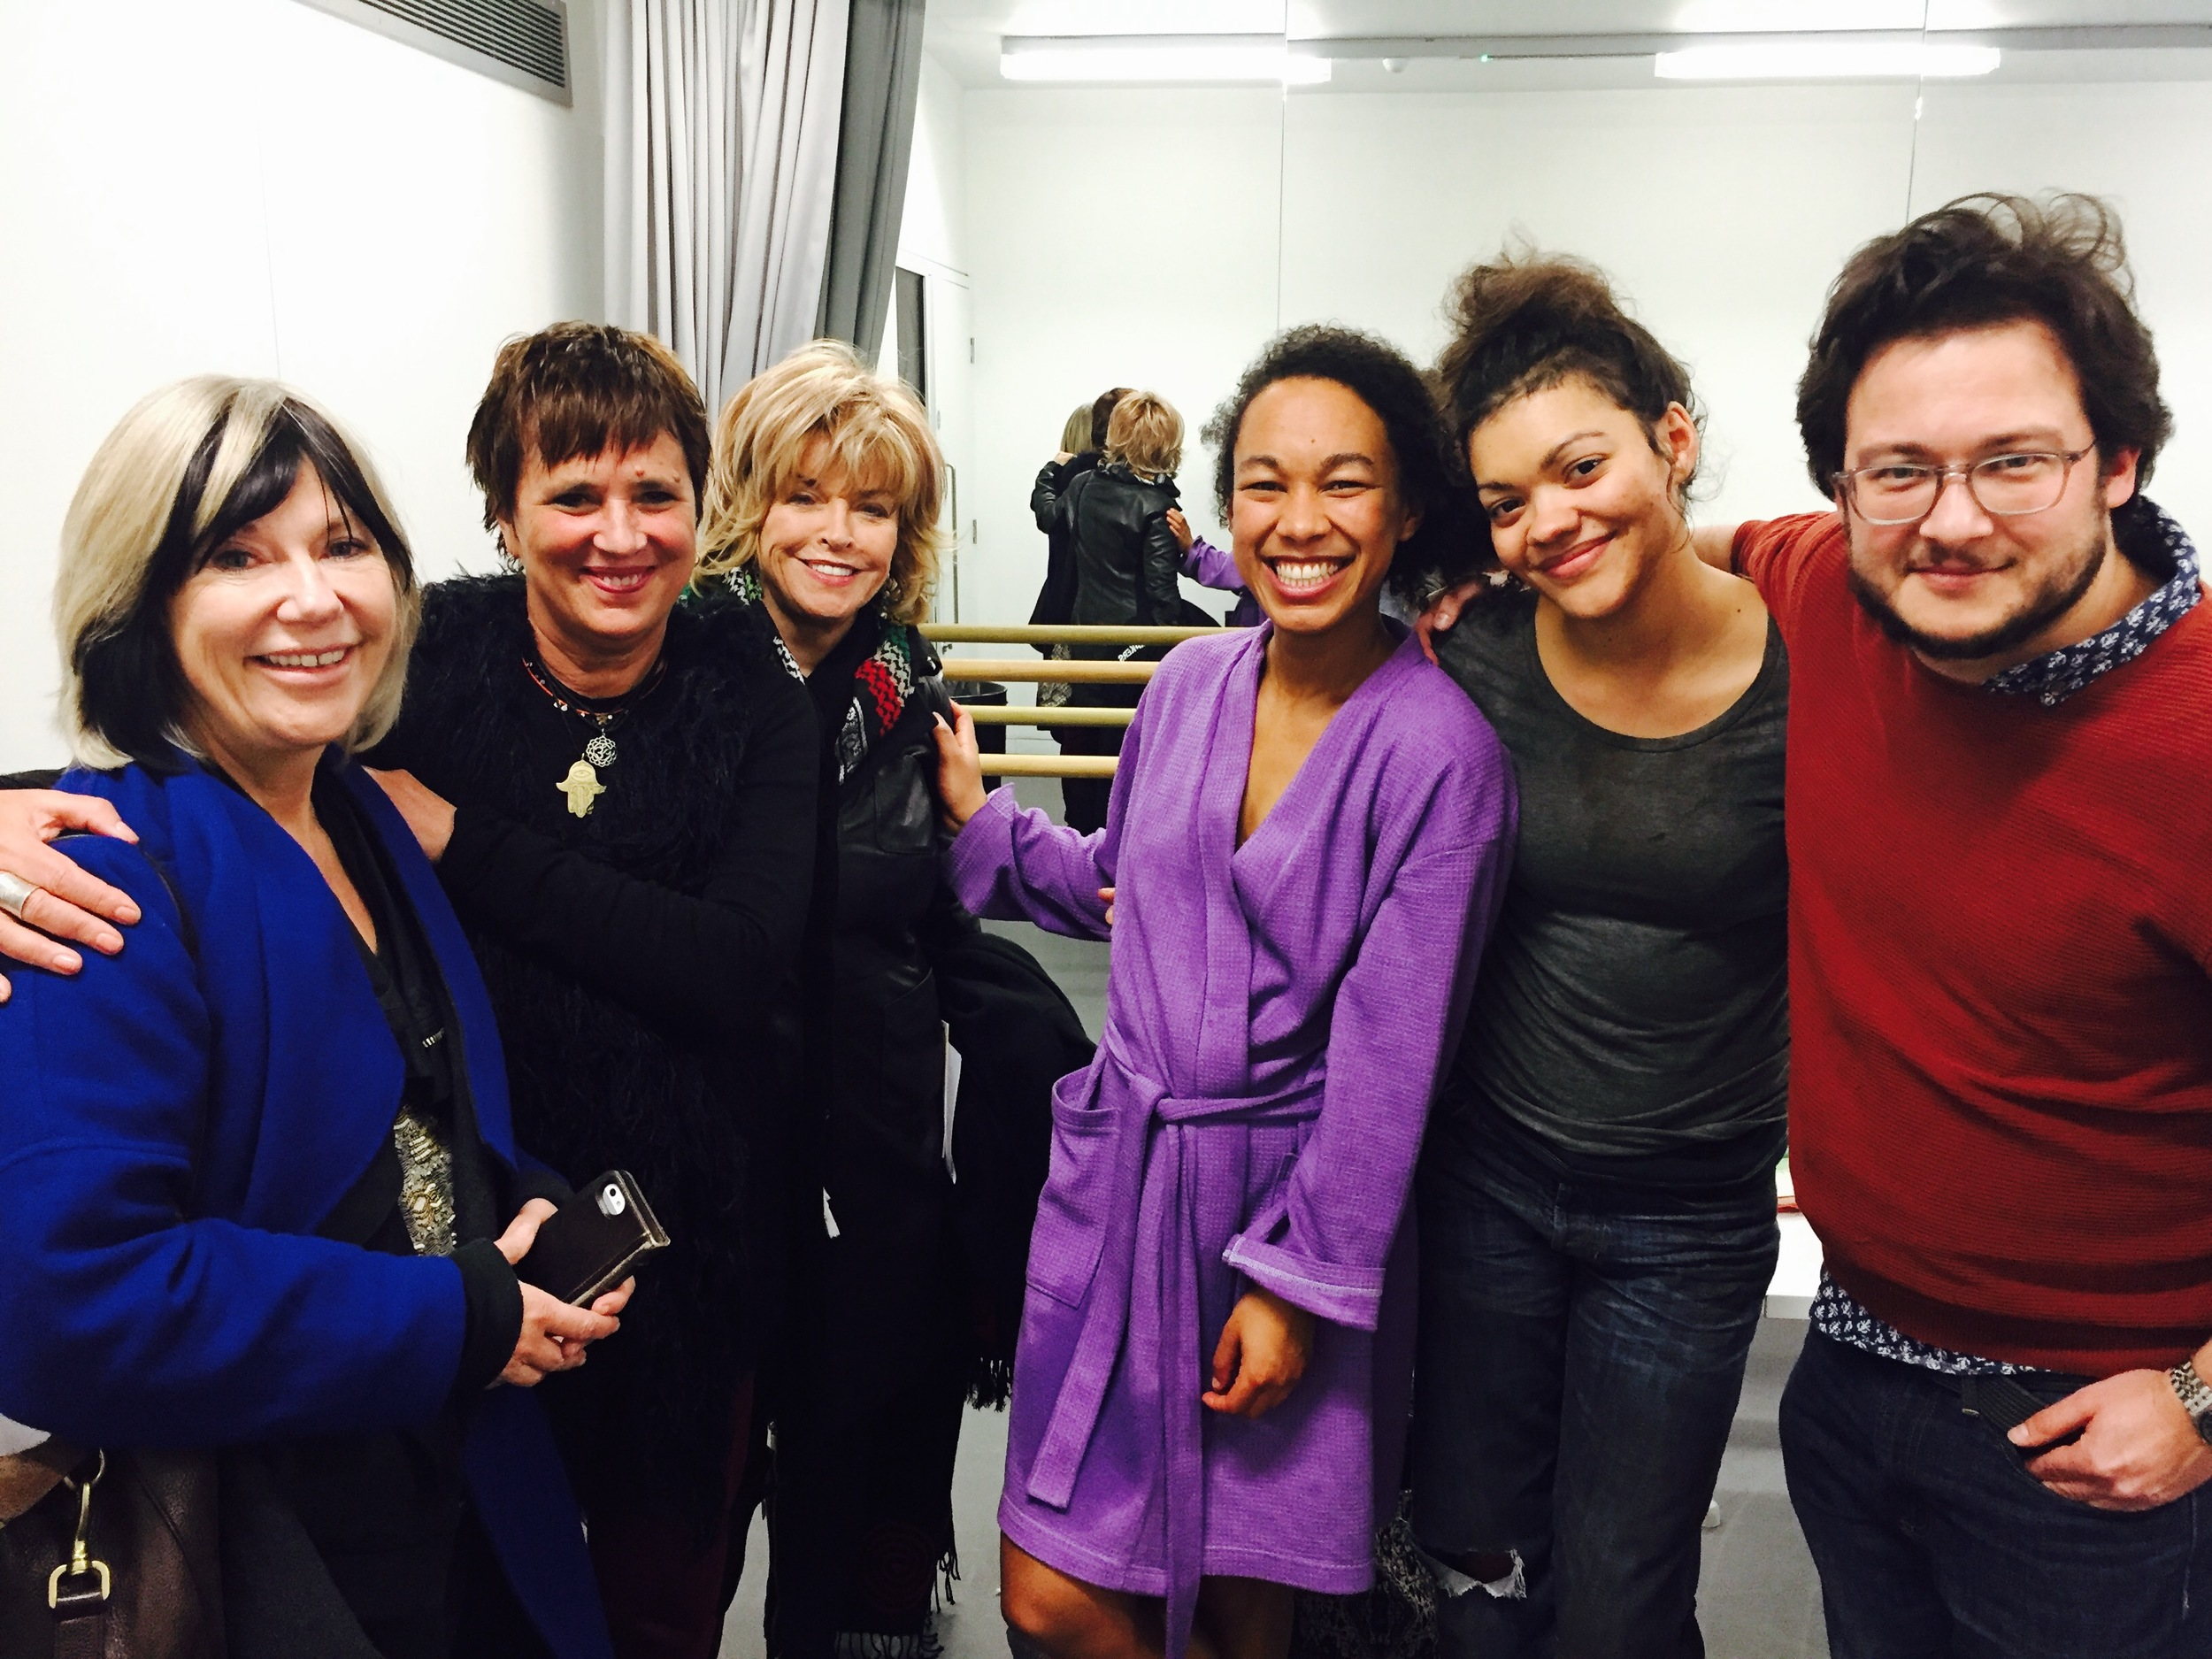 Backstage on opening night of Eve Ensler's new play, The Fruit Trilogy. Pictured left to right: WOW founder Jude Kelly, Ensler, me, actresses Amelia Donkor and Carla Harrison-Hodge, and director Mark Rosenblatt